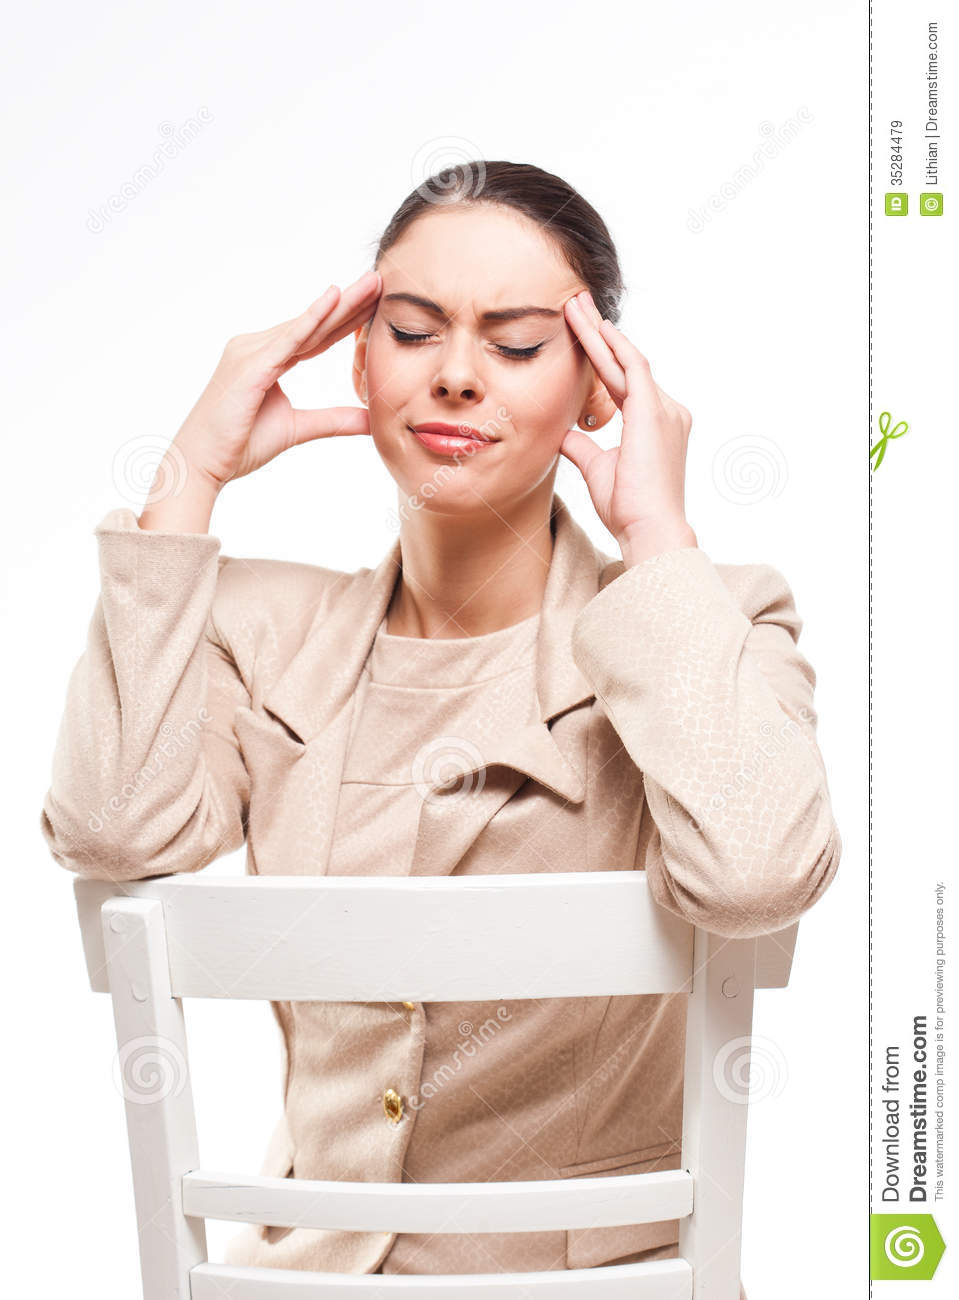 Wasted. Royalty Free Stock Images